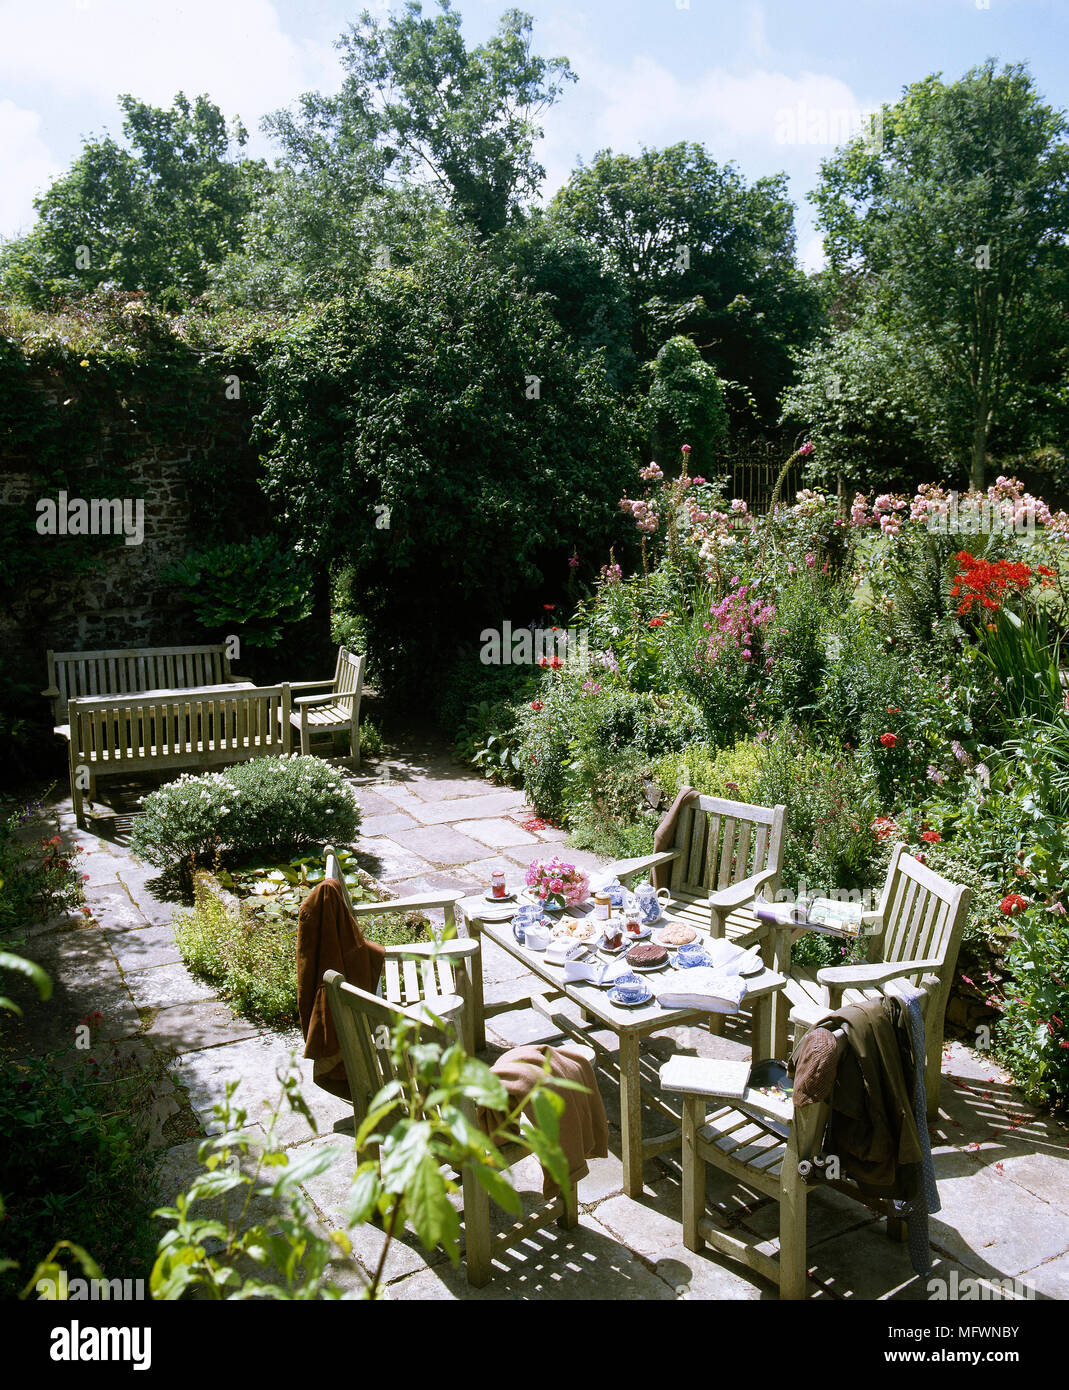 Back patio with wooden outdoor dining table and chairs bench seating area and blooming garden